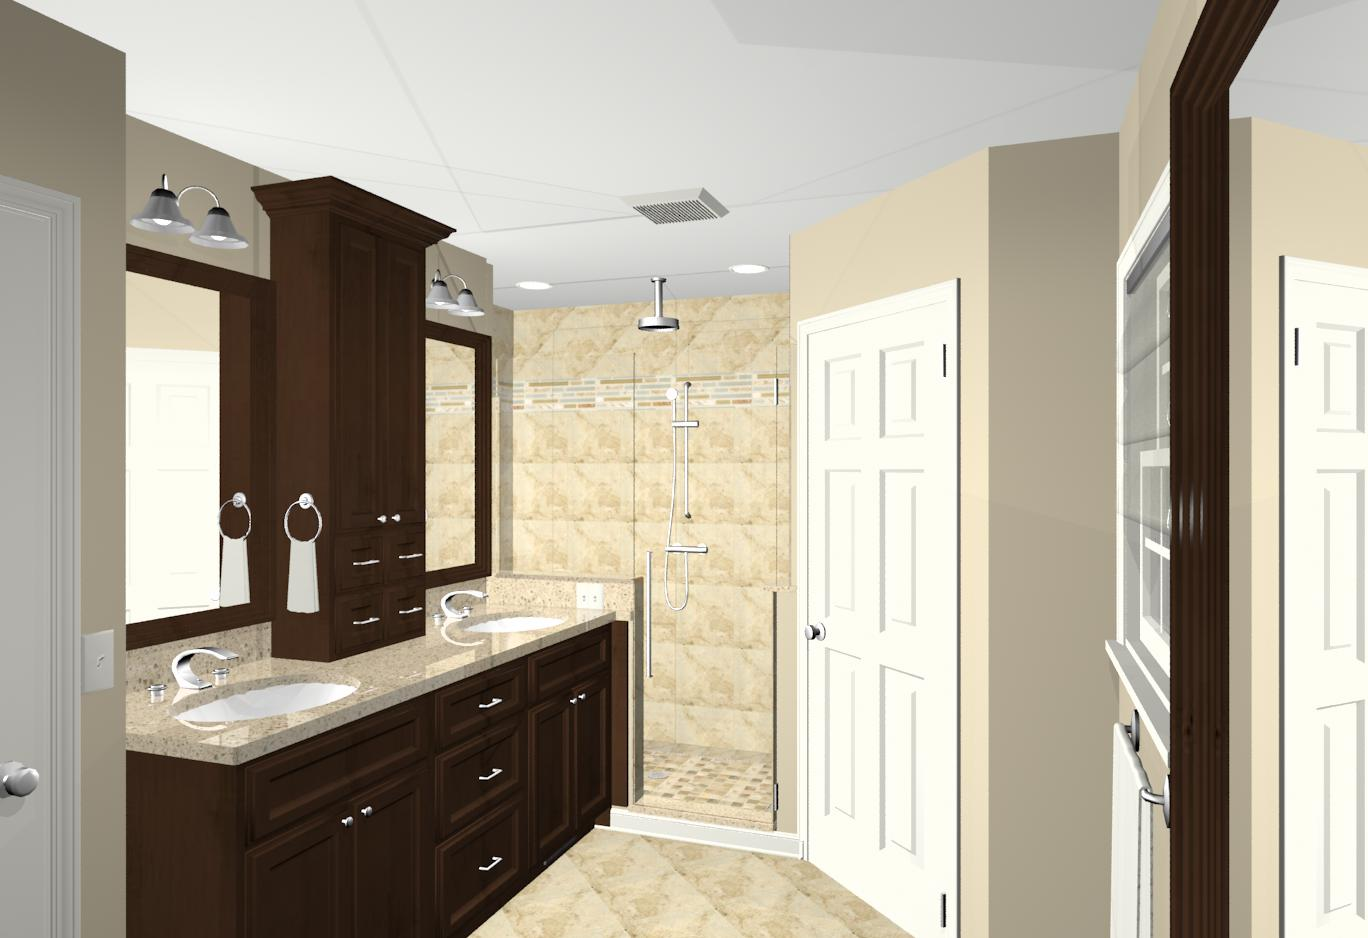 Morris county nj bathroom remodeling contractors and for Simple master bathroom ideas